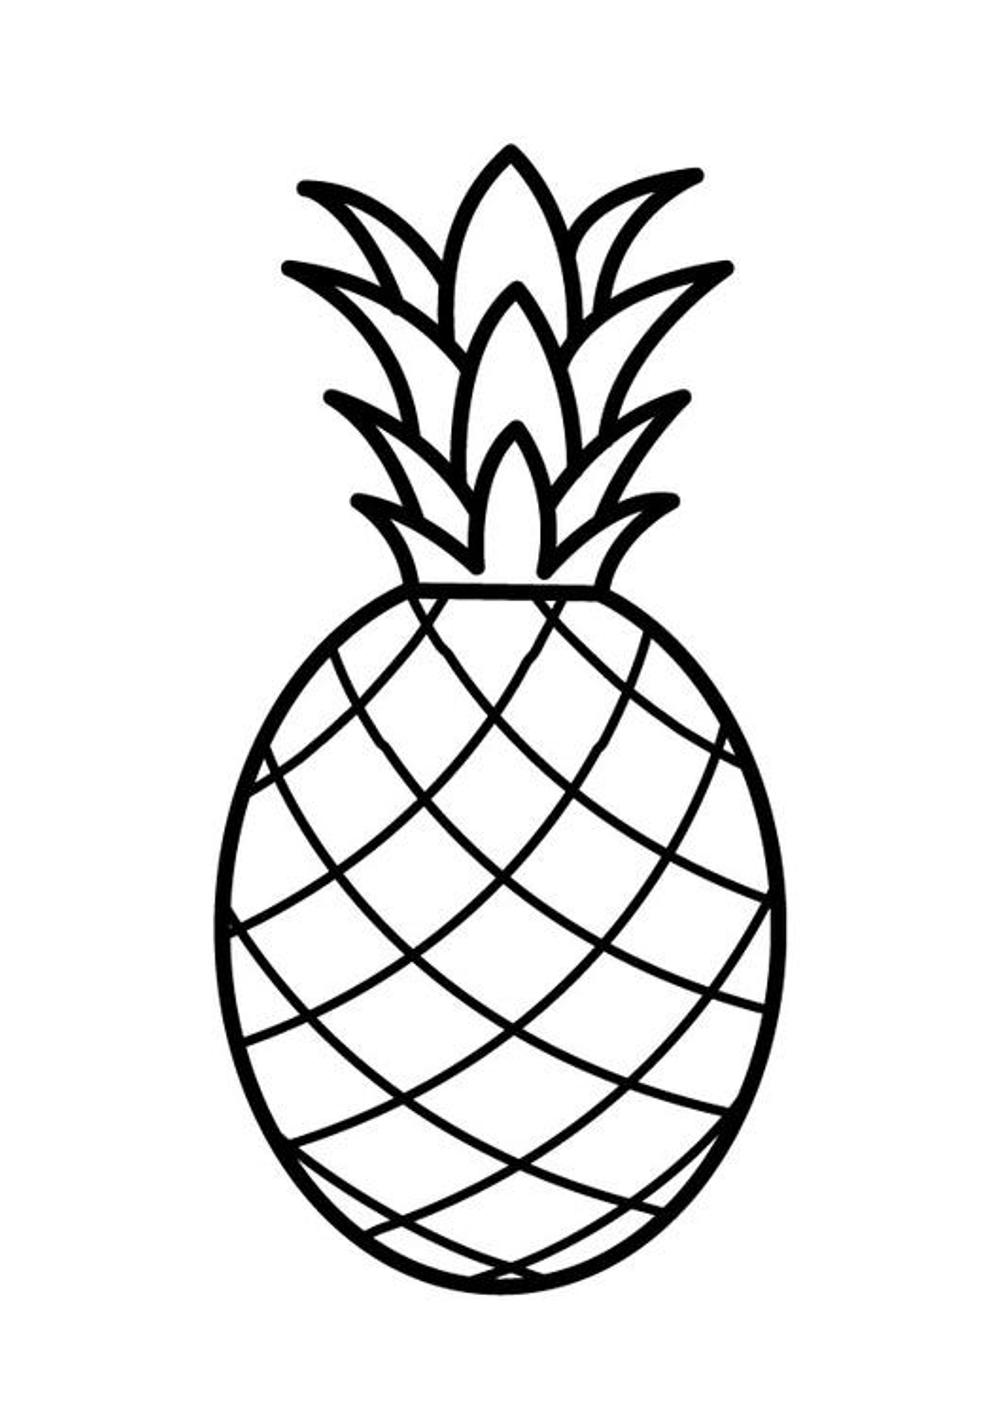 fruit coloring for kids fruits and vegetables coloring pages at getdrawings free coloring fruit kids for